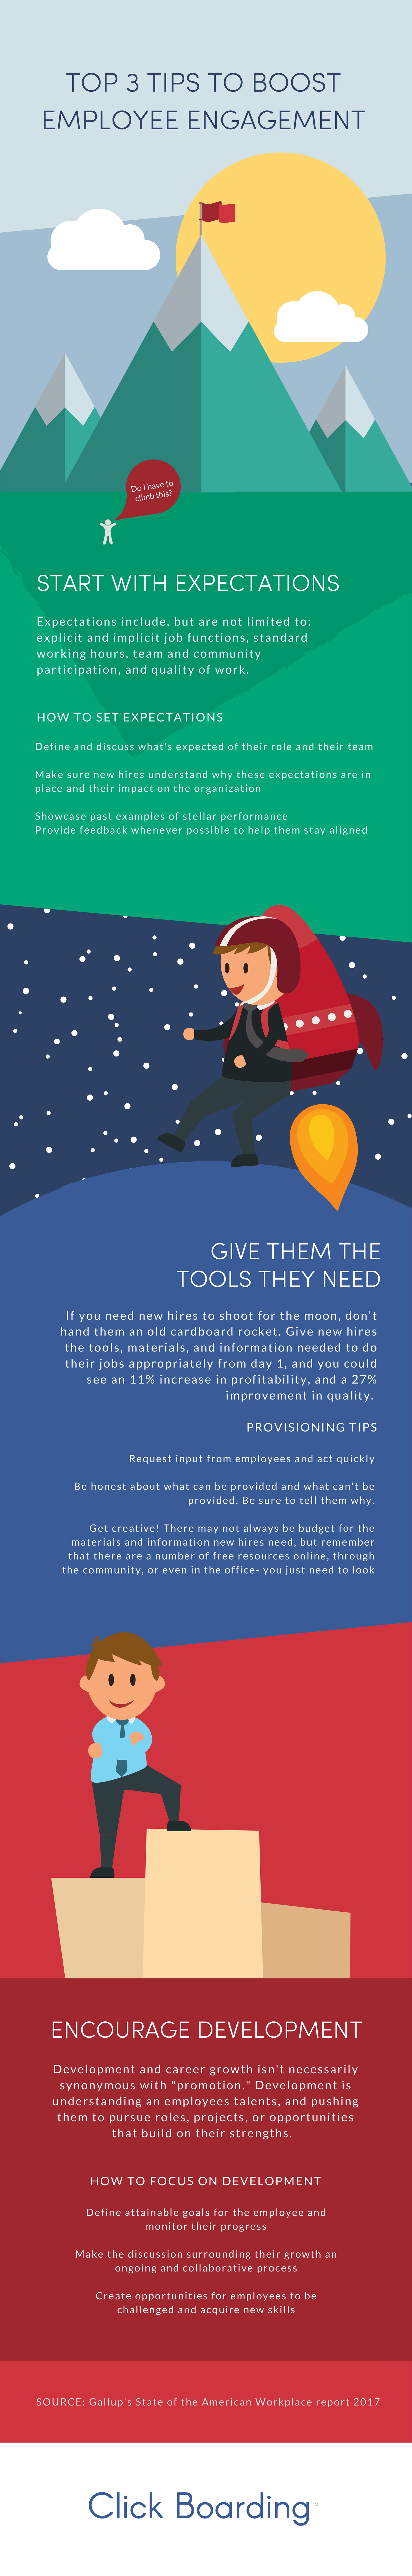 Top-3-Tips-for-Employee-Engagement-CB.jpg